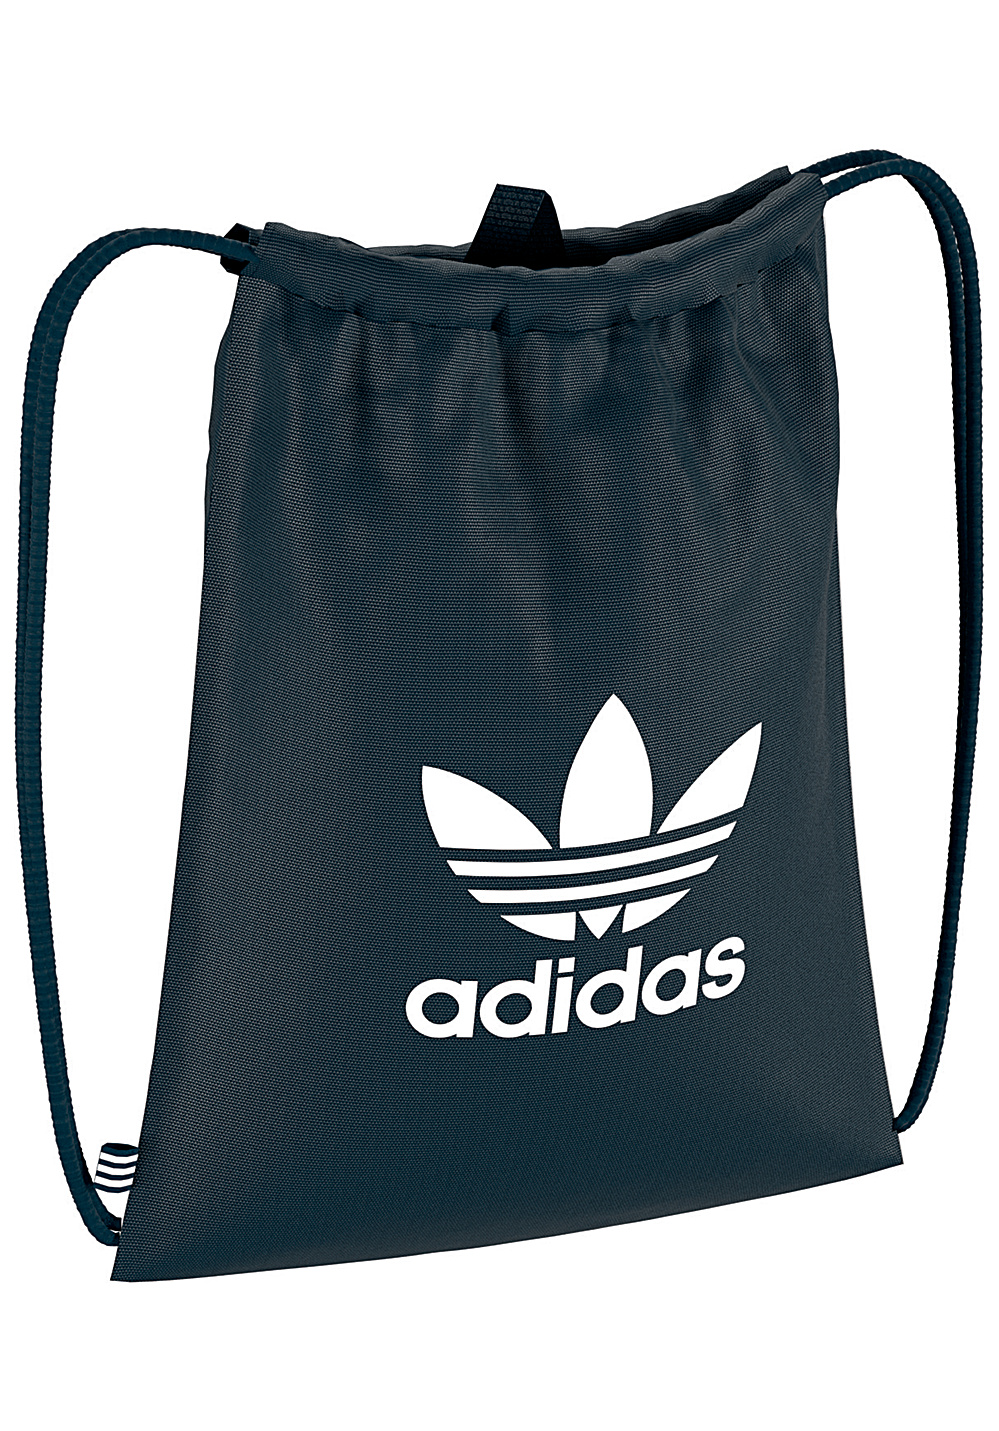 1c2ad3732f698 ADIDAS ORIGINALS Gymsack Trefoil - Gym Bag - Blue - Planet Sports